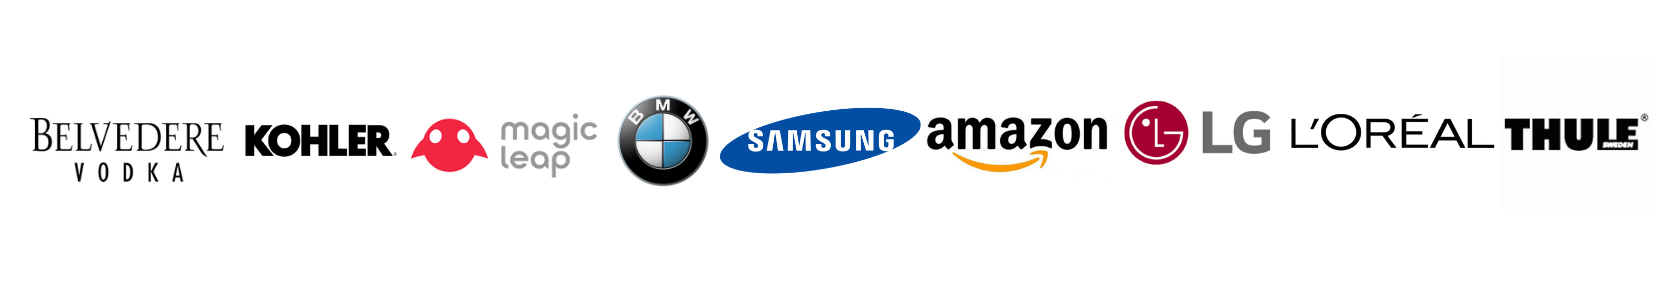 Gain ISTA-6 Amazon Certification - THP Systems